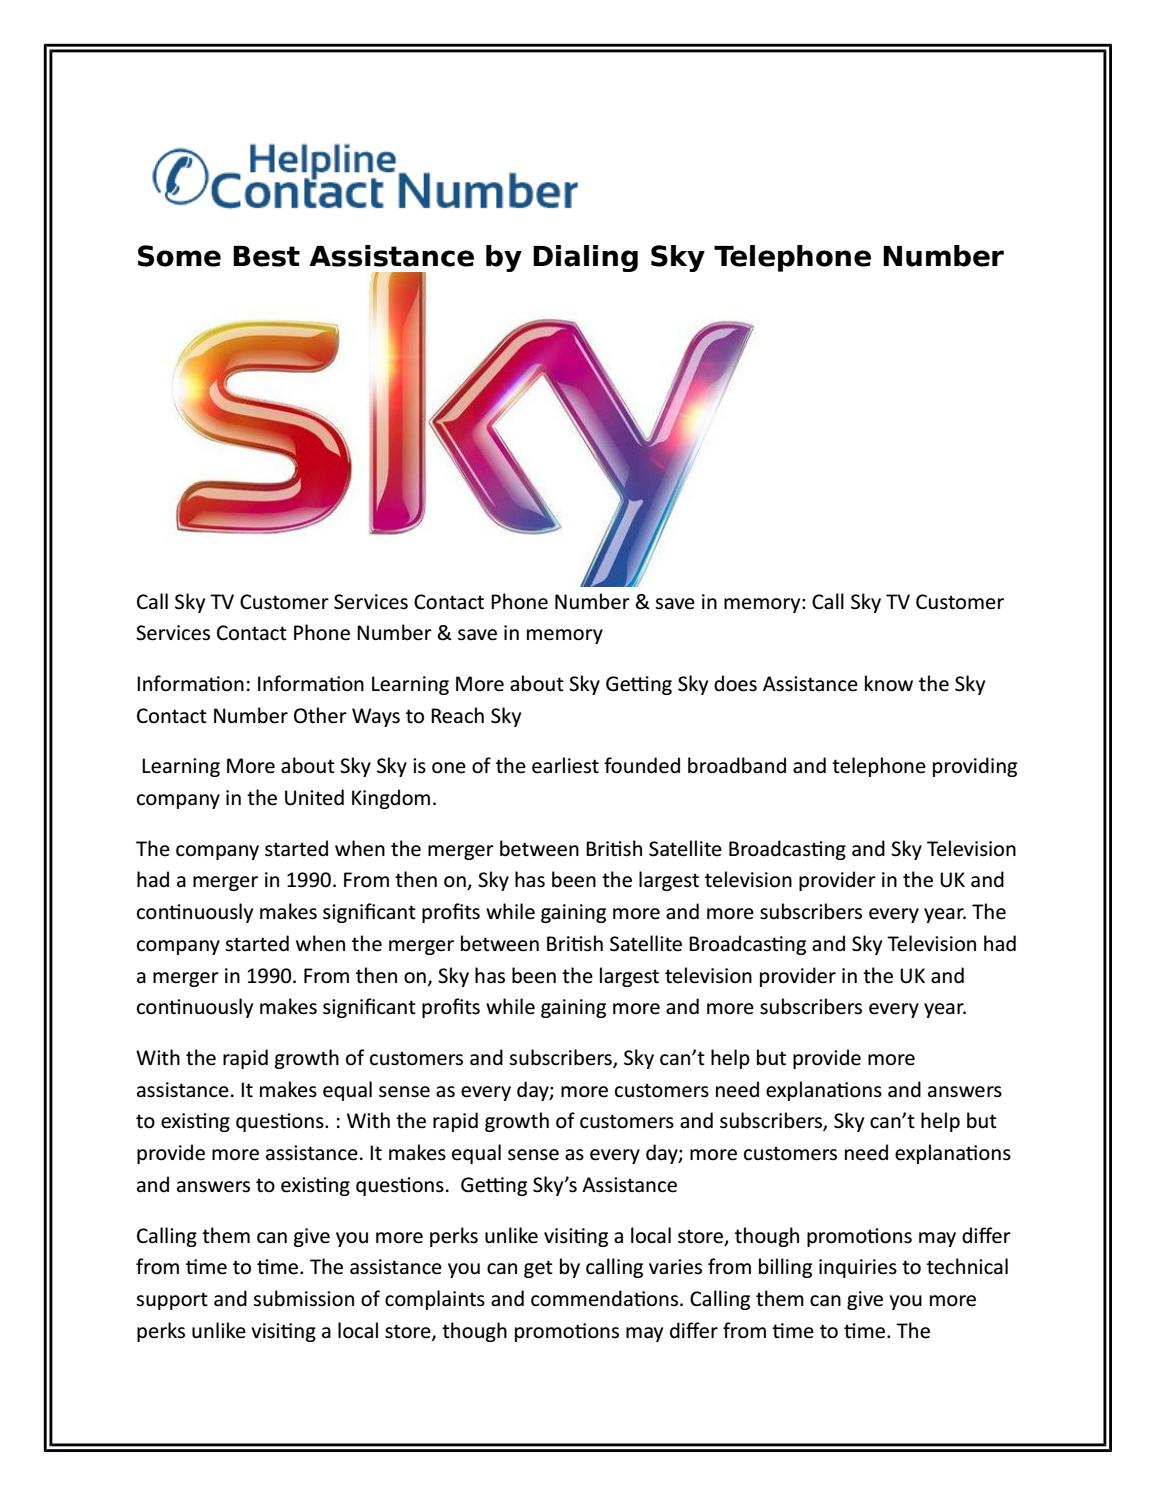 Some Best Assistance By Dialing Sky Telephone Number 1 By Pmikepin Issuu